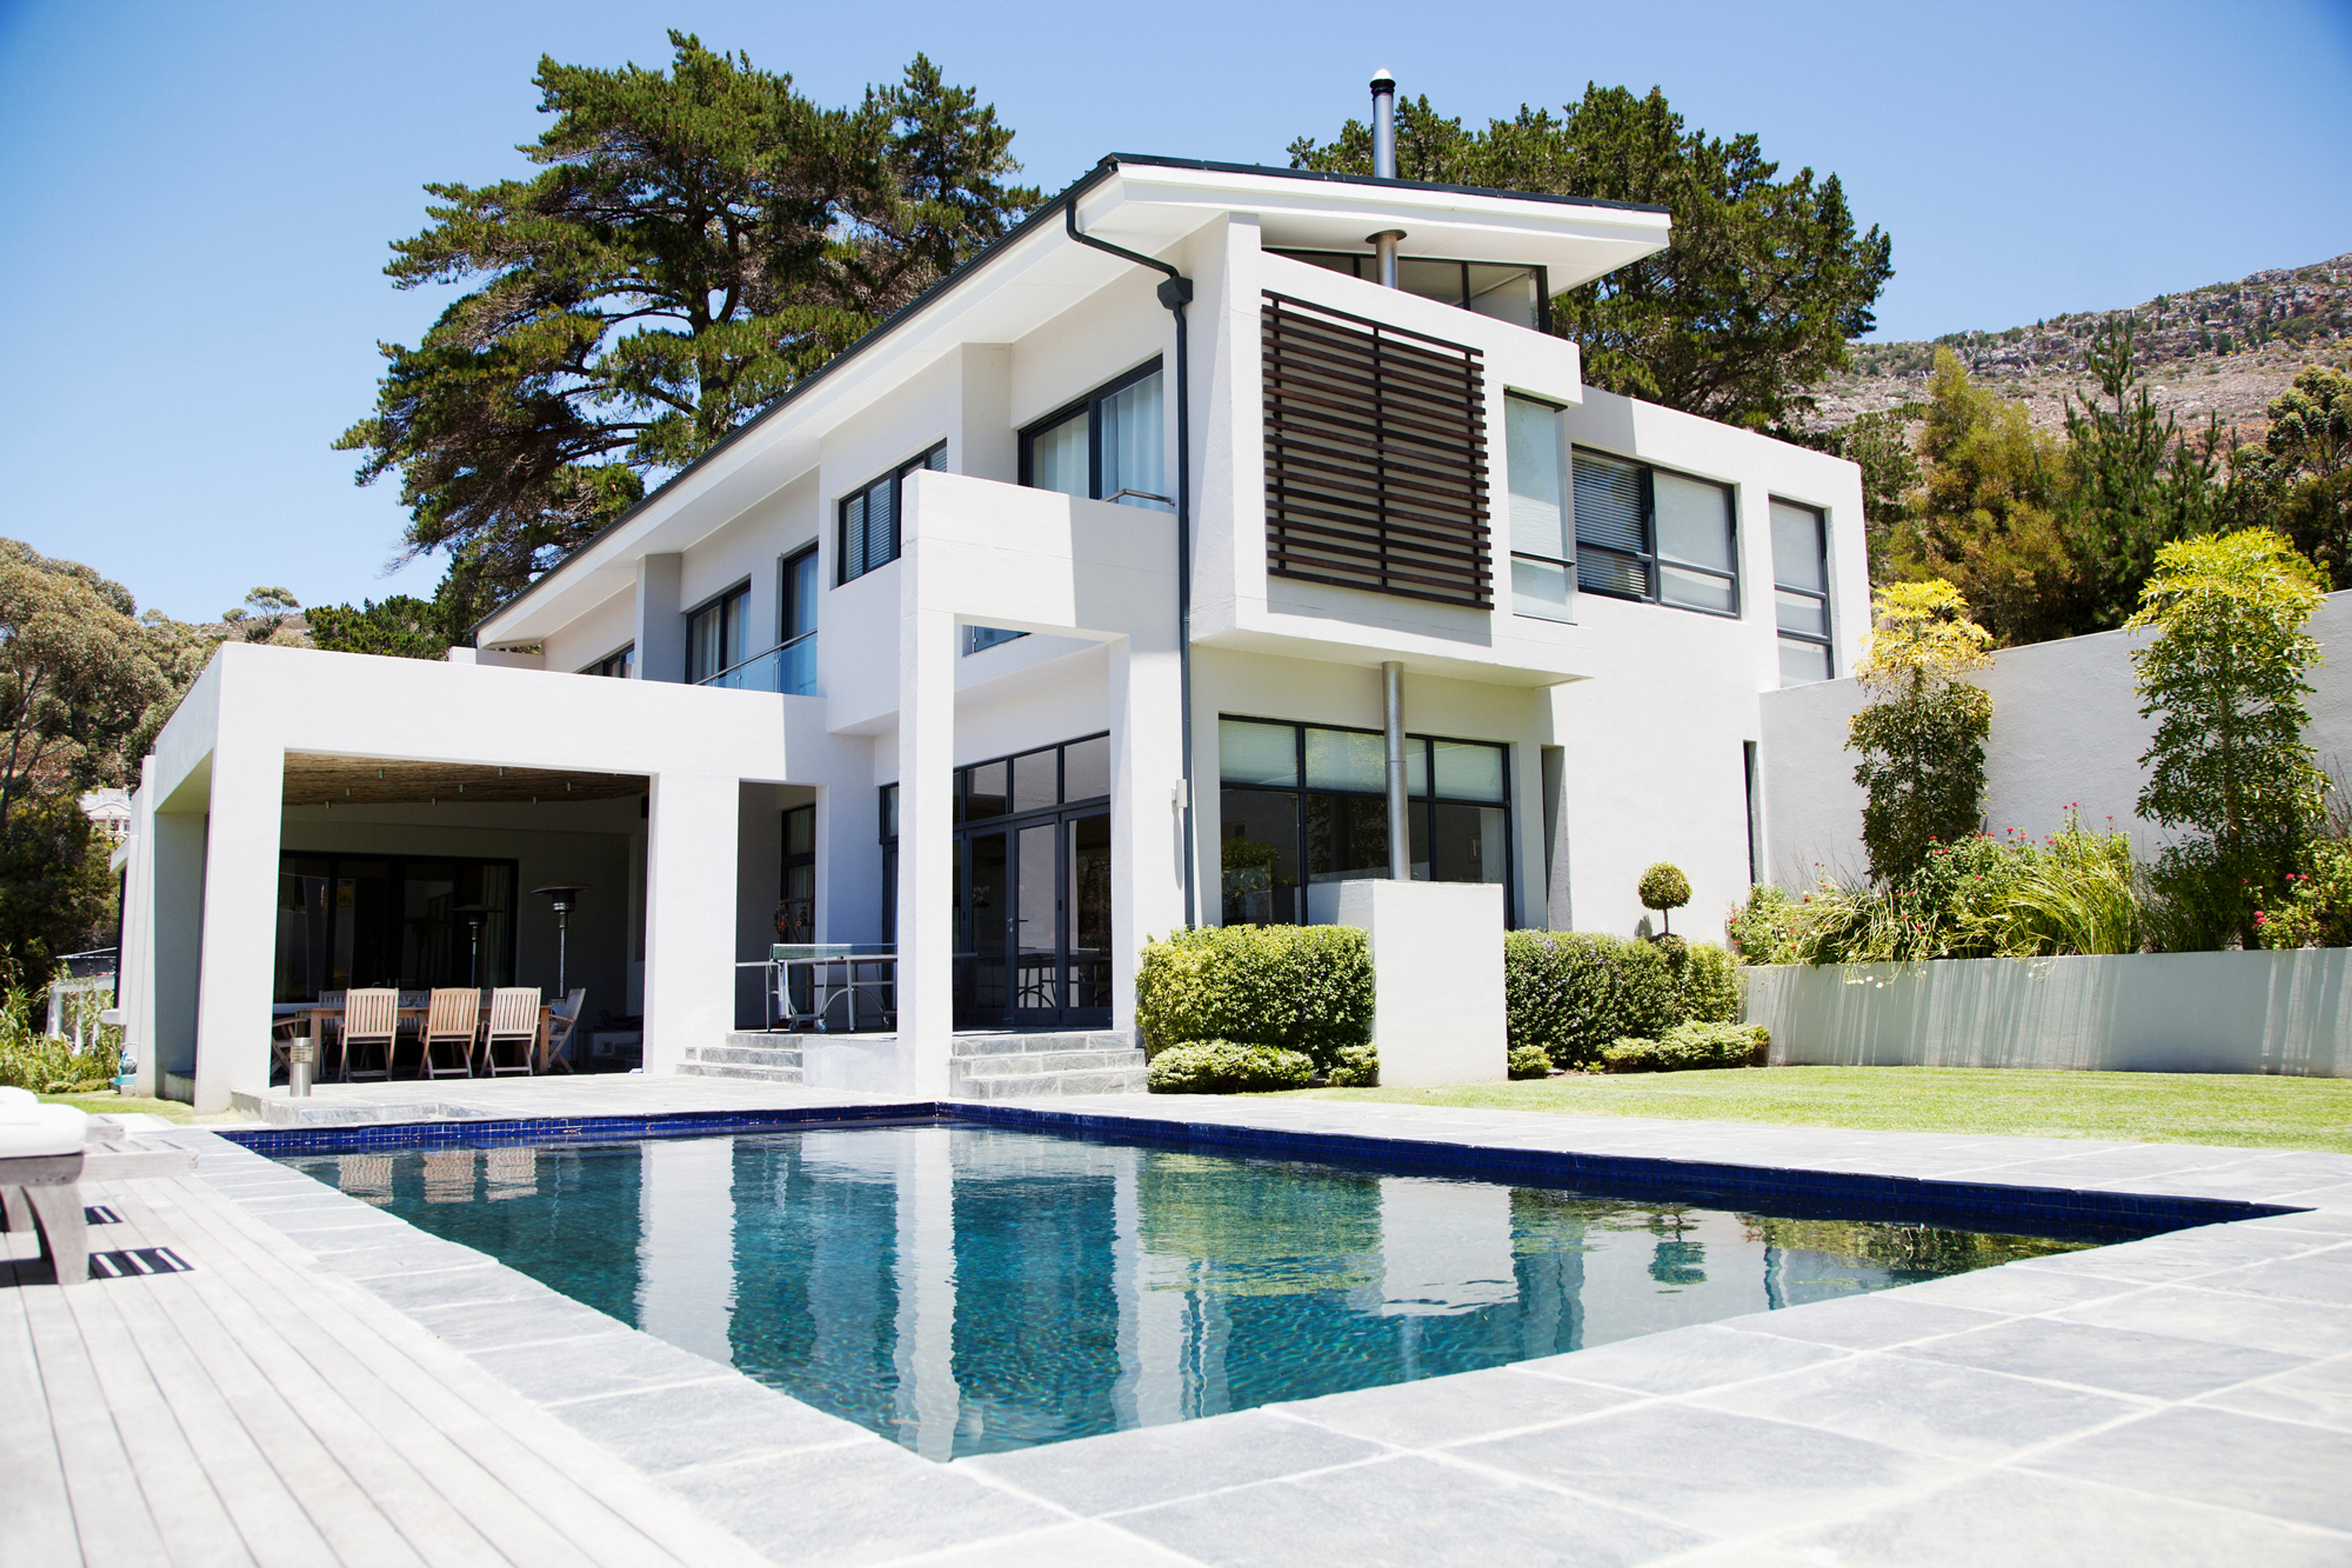 terryflood Large Modern House with Pool - ^